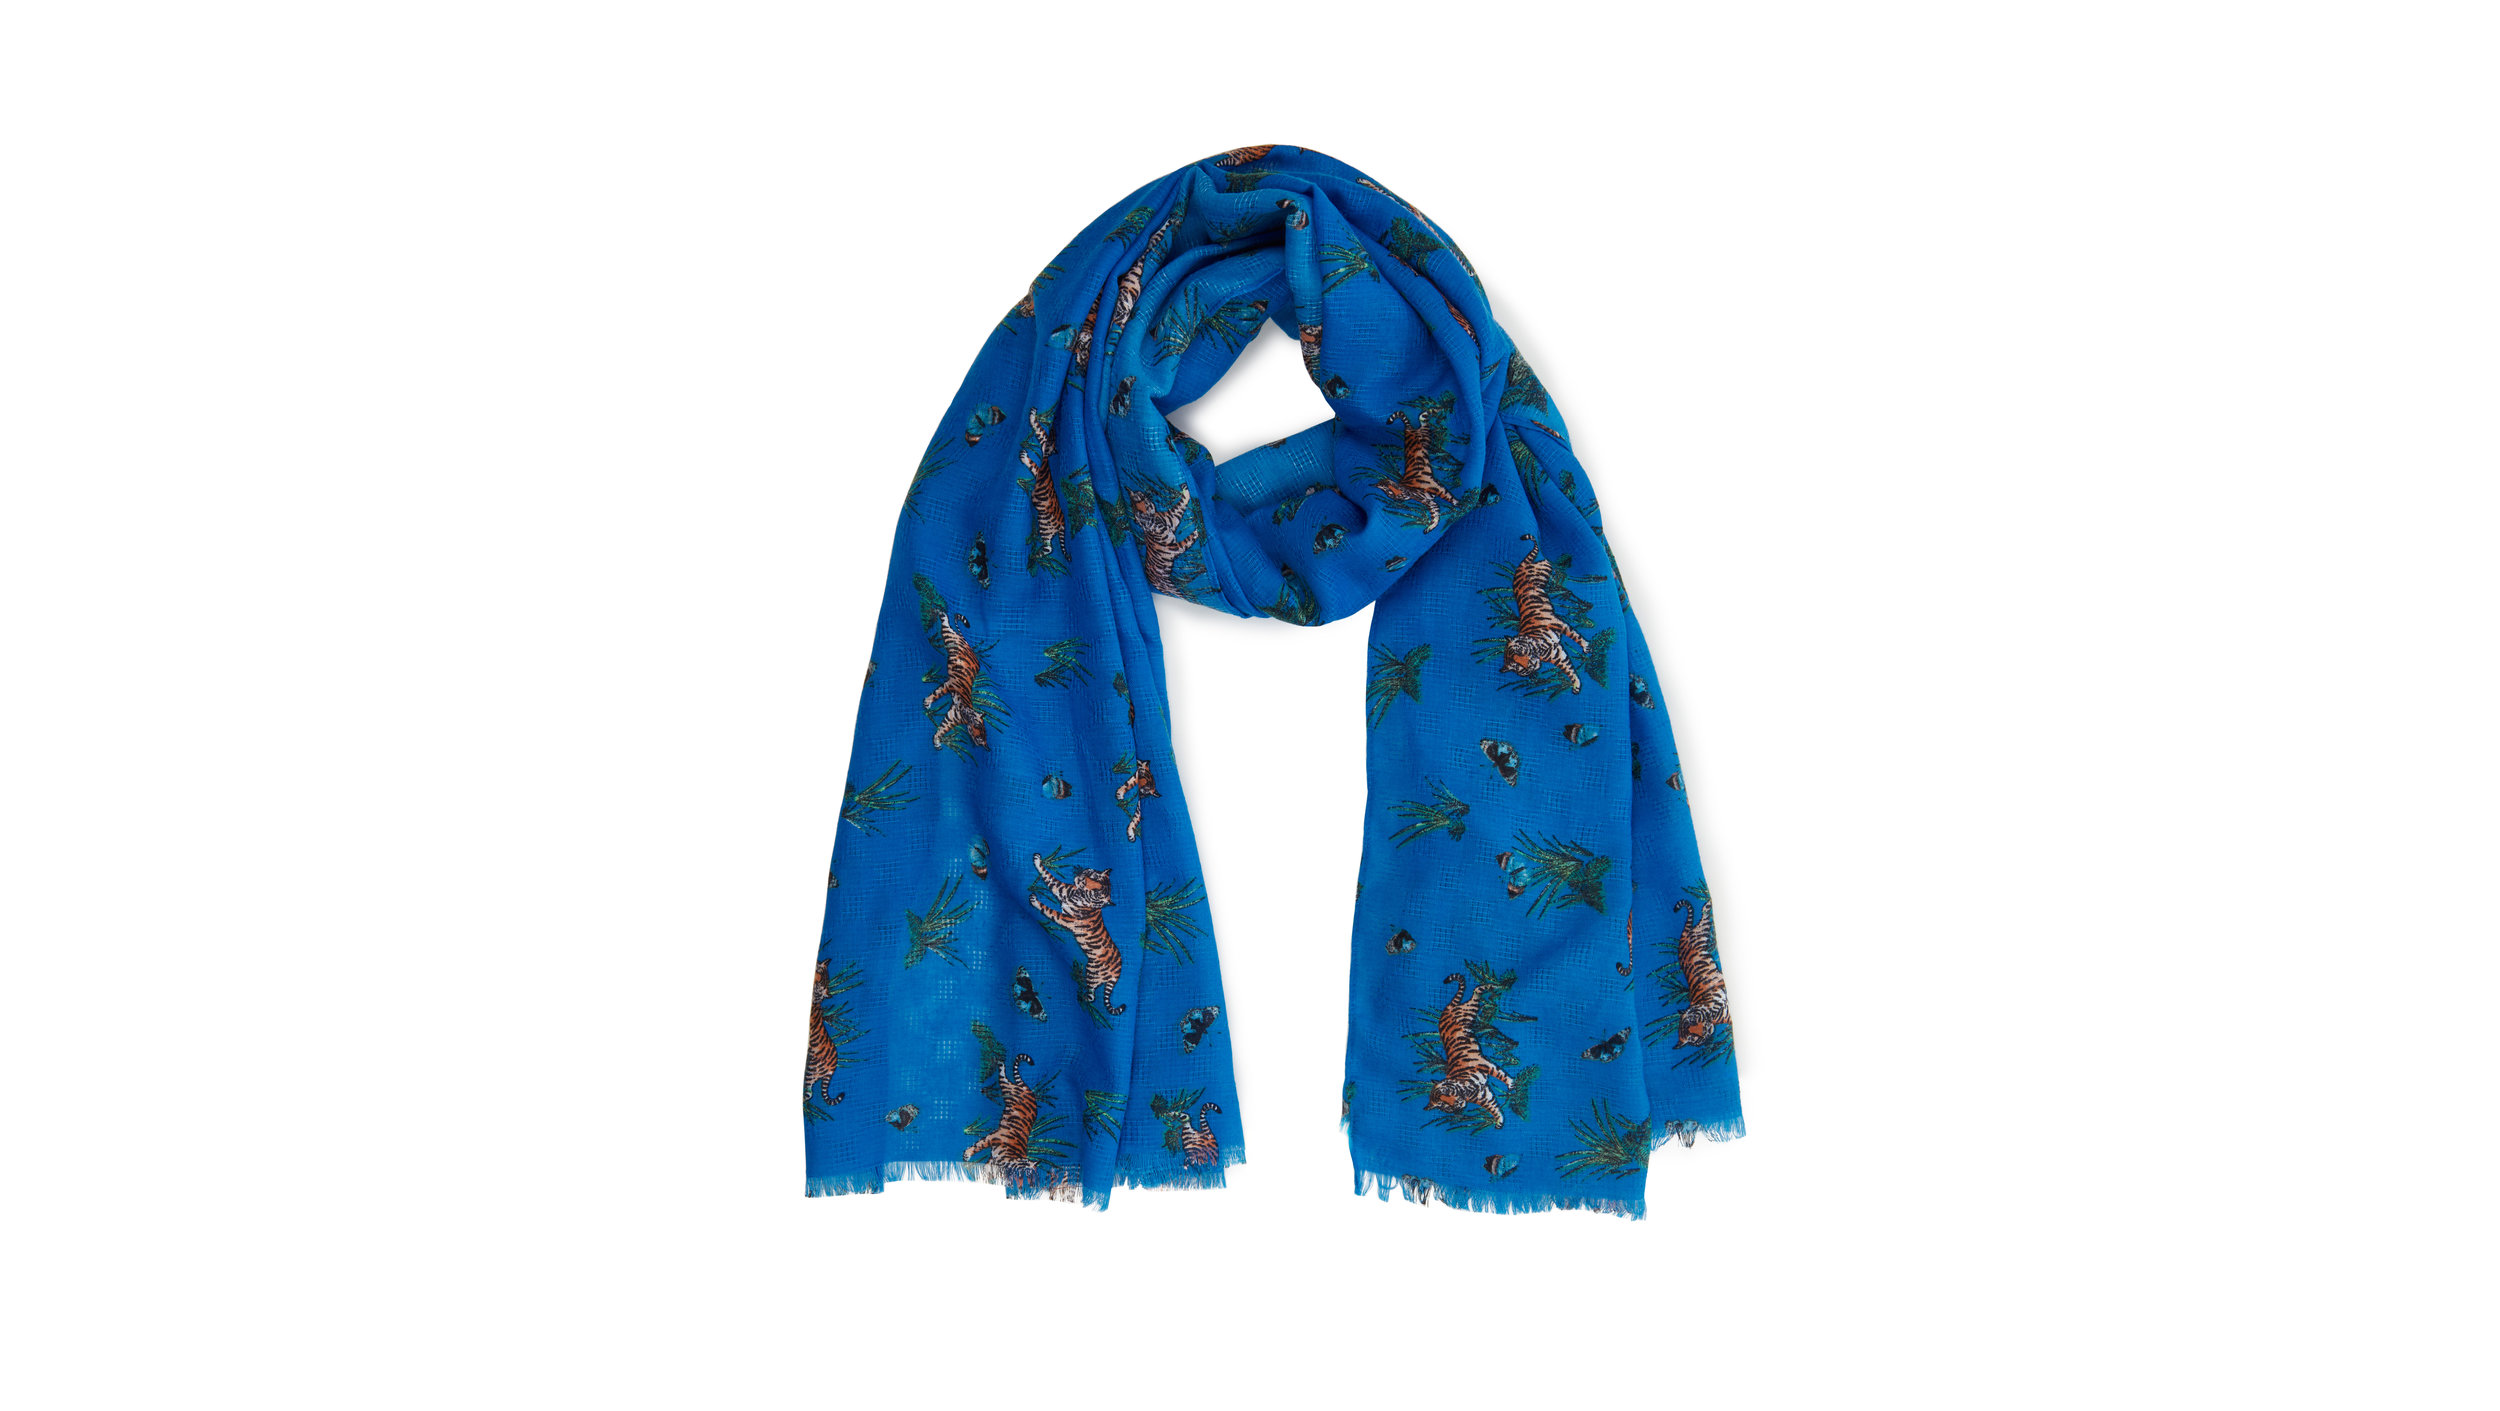 blue-tiger-scarf-london-zoo-oasis-zsl